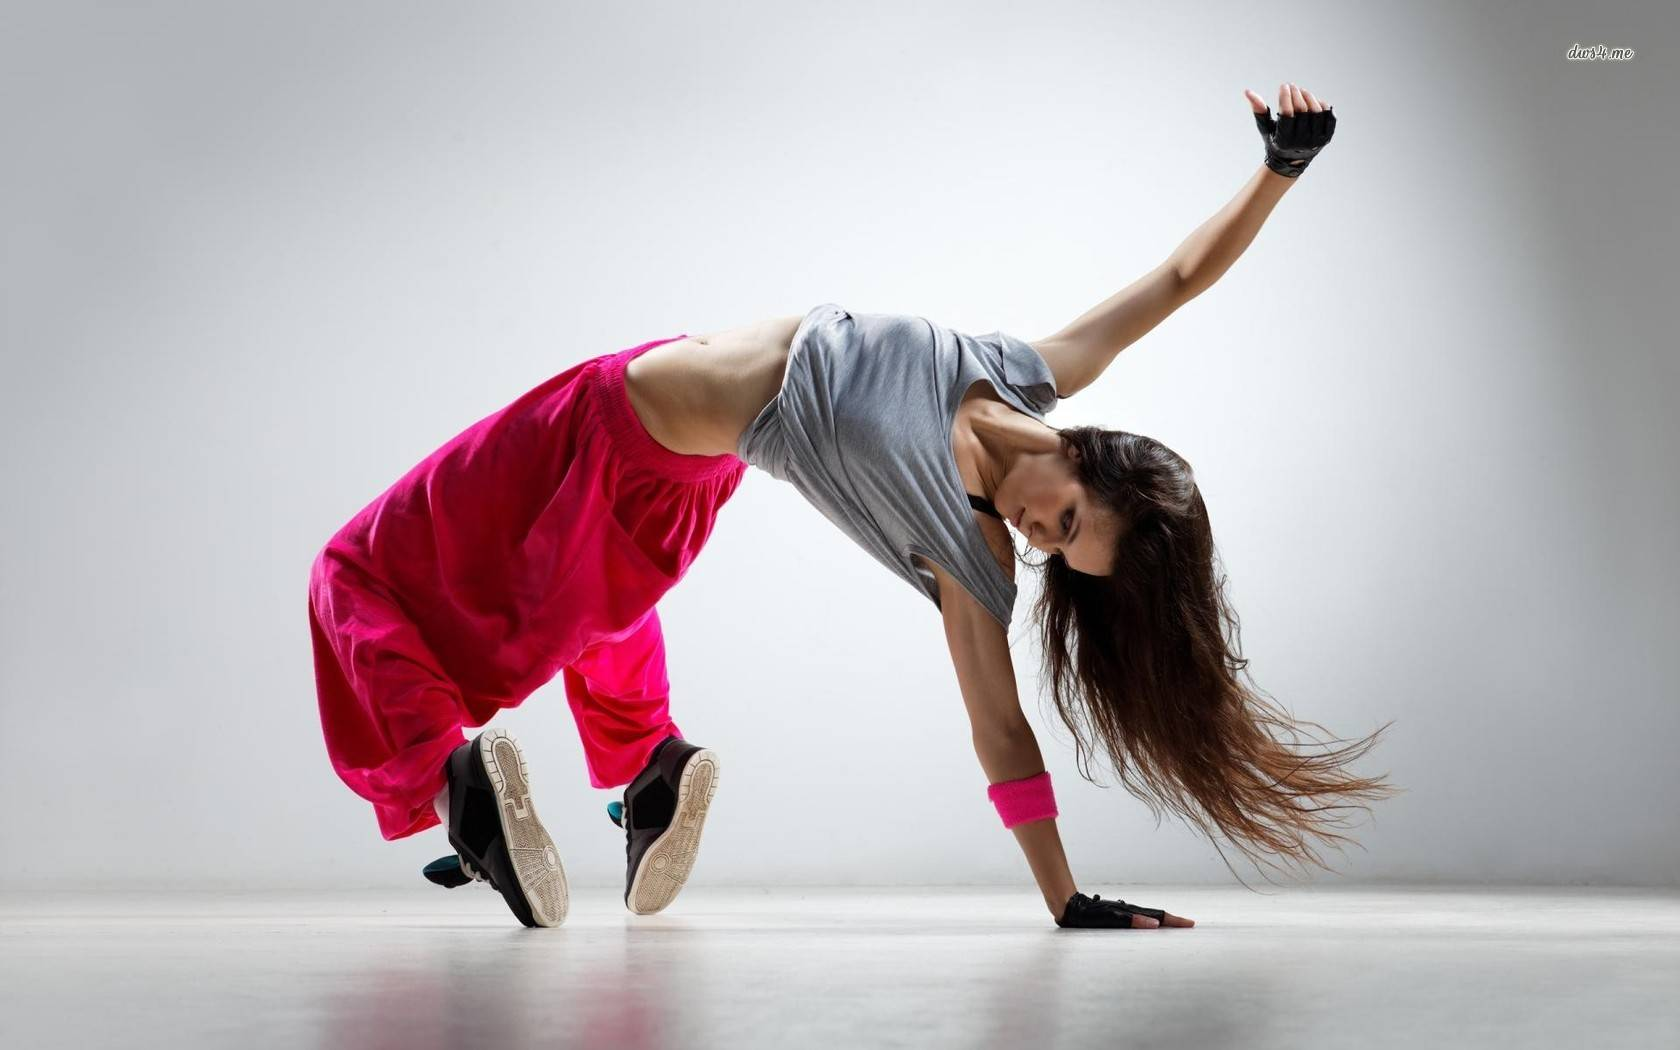 hd wallpapers hip hop dancer wallpaper music 1680x1050 wallpaper 1680x1050